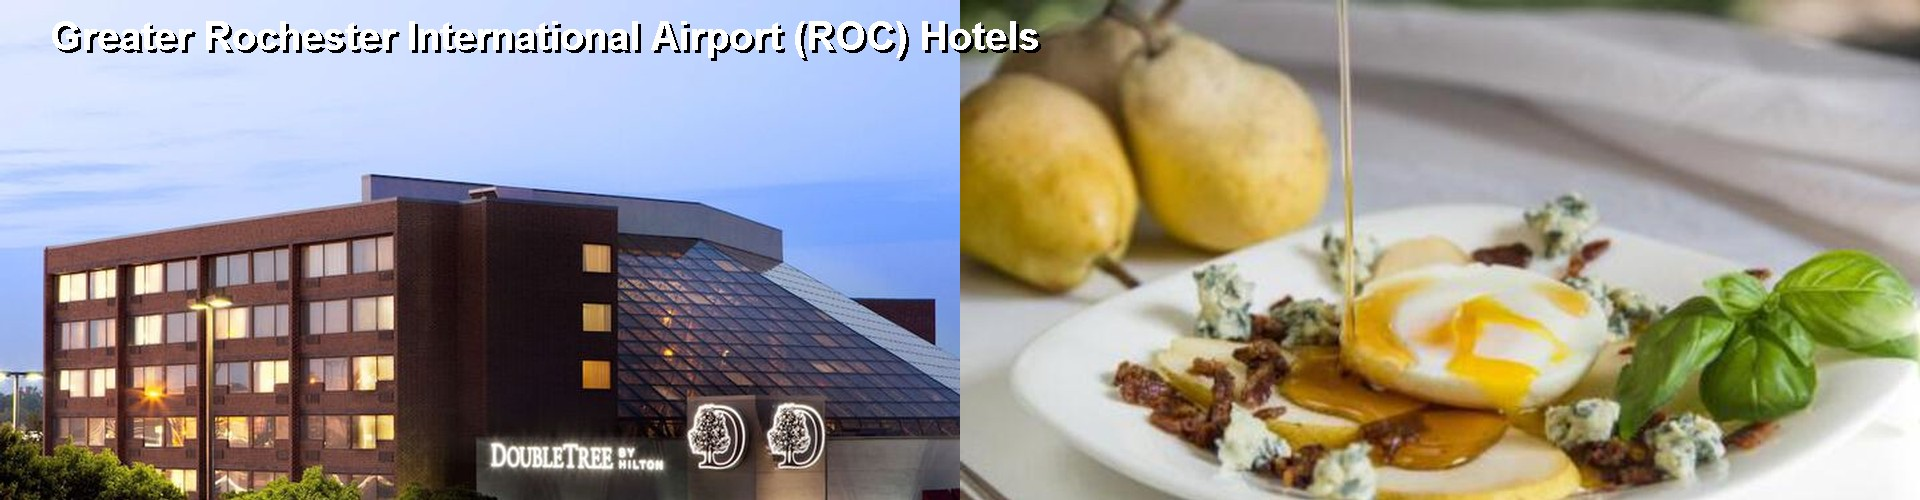 60 Hotels Near Greater Rochester International Airport Roc Ny